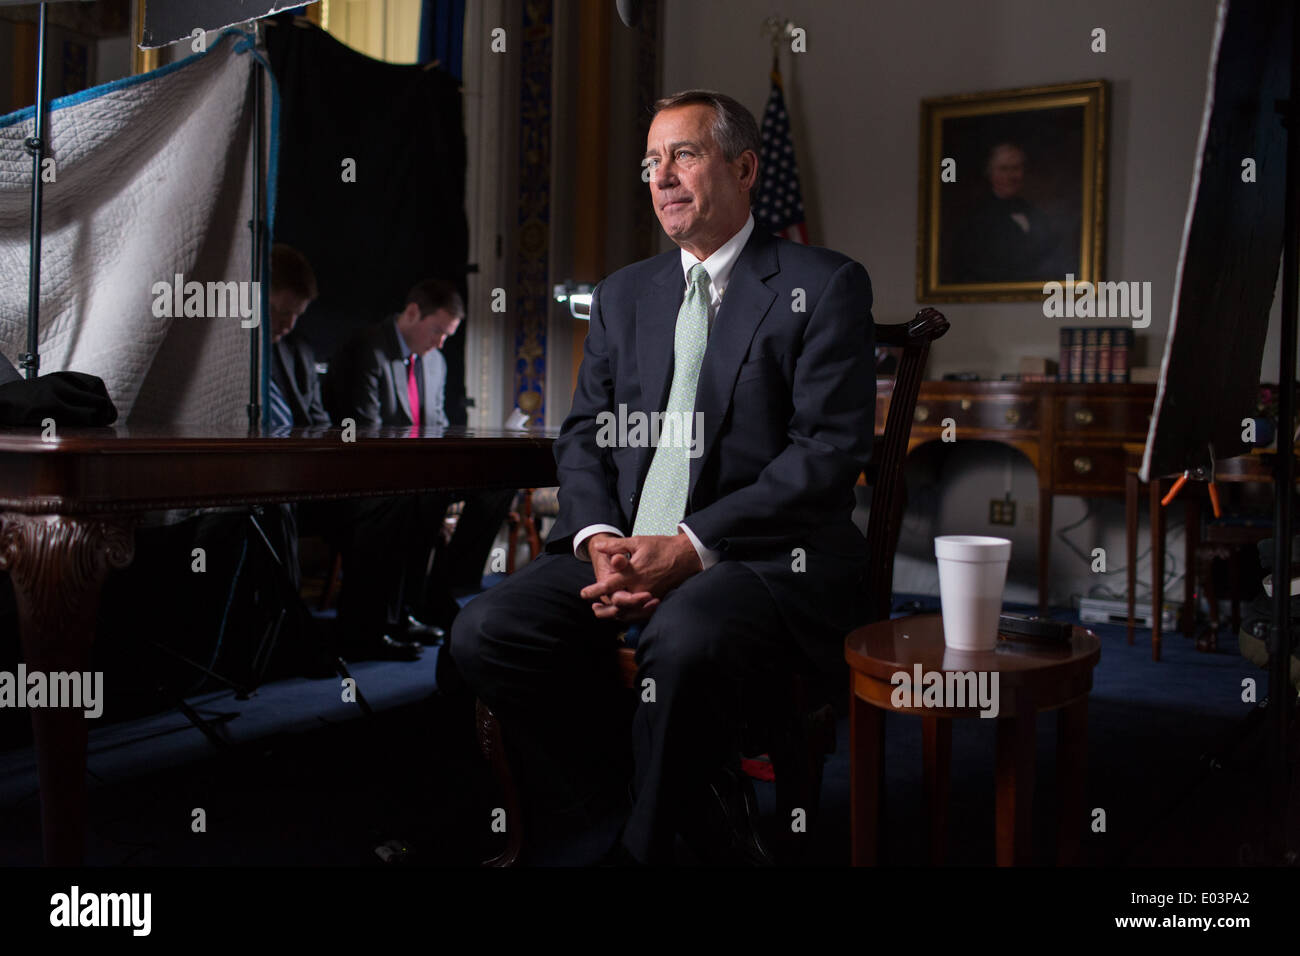 US Speaker of the House John Boehner tapes an interview for PBS's FRONTLINE in the Board of Education room at the Capitol January 23, 2013 in Washington, DC. - Stock Image